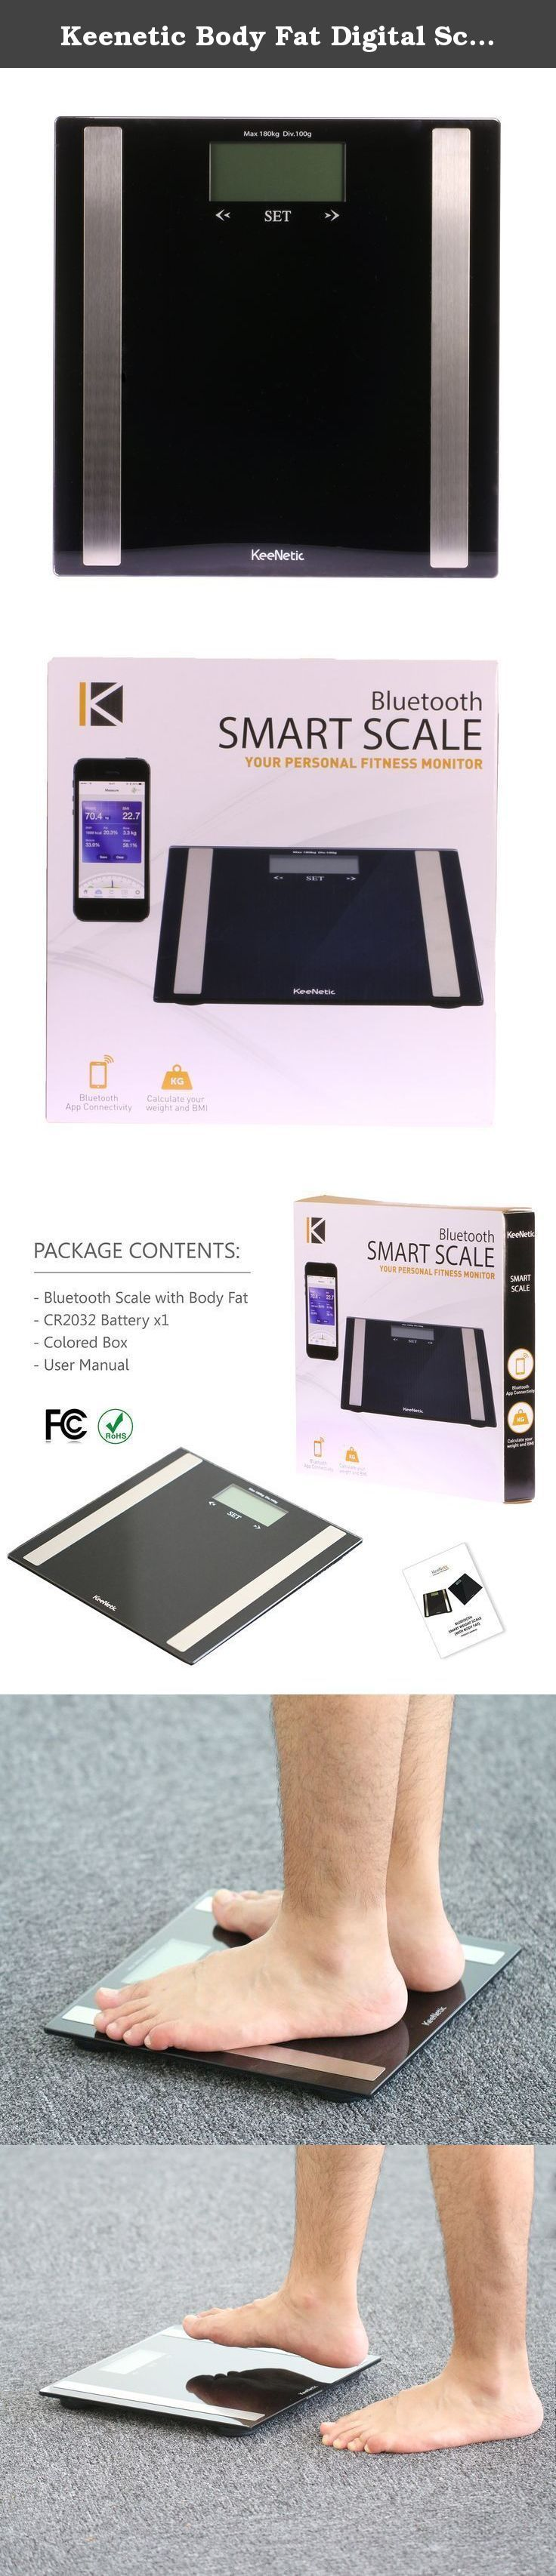 Keenetic Body Fat Digital Scale, Measures Weight, Fat, Muscle, Water, & Bone Mass Bath Weight Scales. Bluetooth SMART Technology Keenetic Smart Scale measures your weight and when combined with app, c